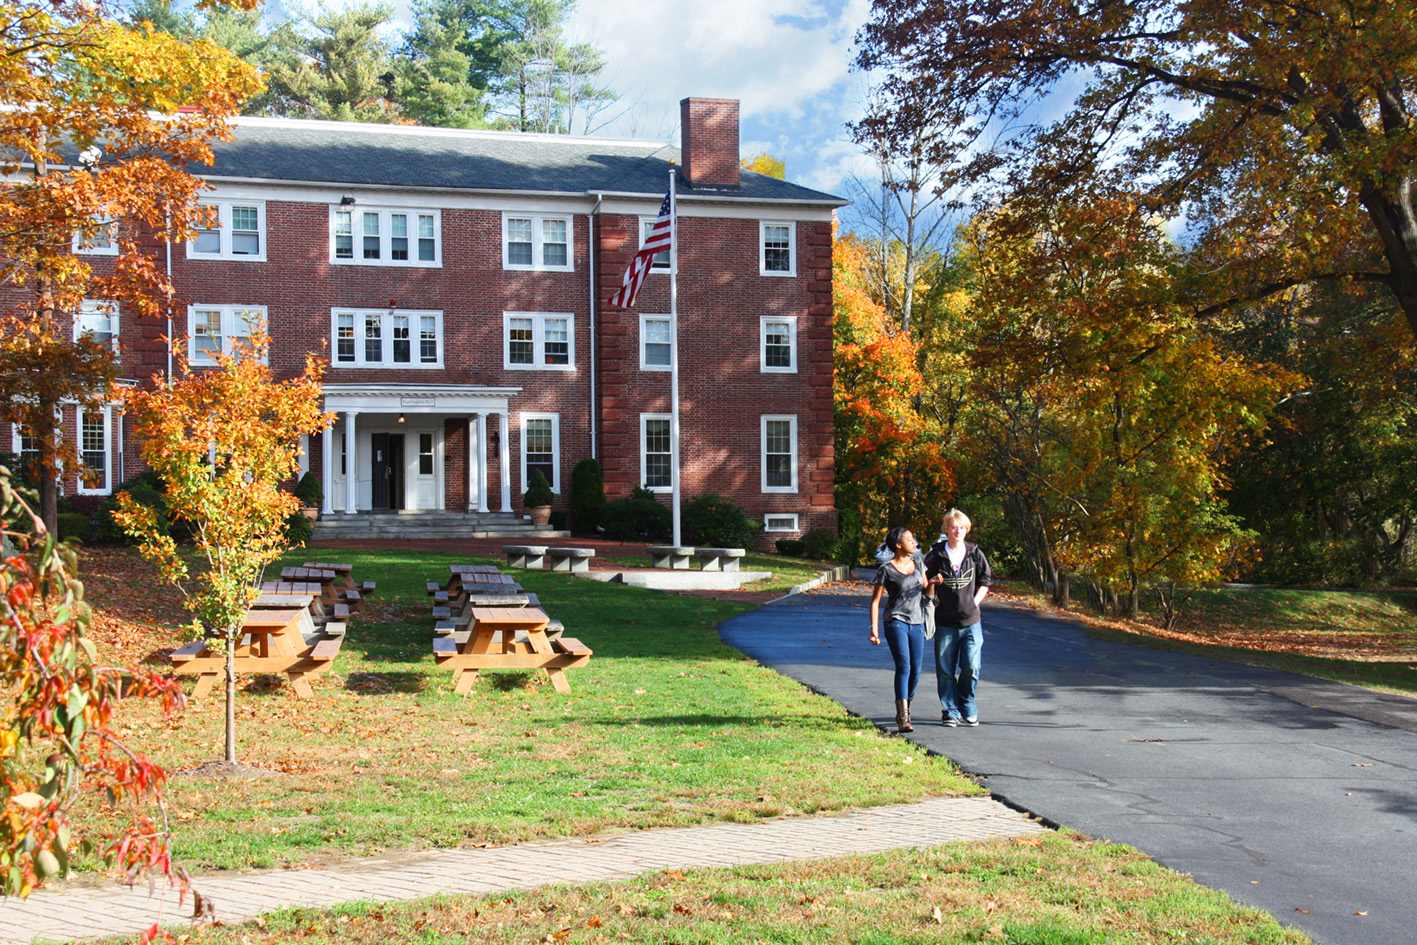 1411495163-Harrington-Image-Fall-New-England-Boarding-Day-Private-School-11